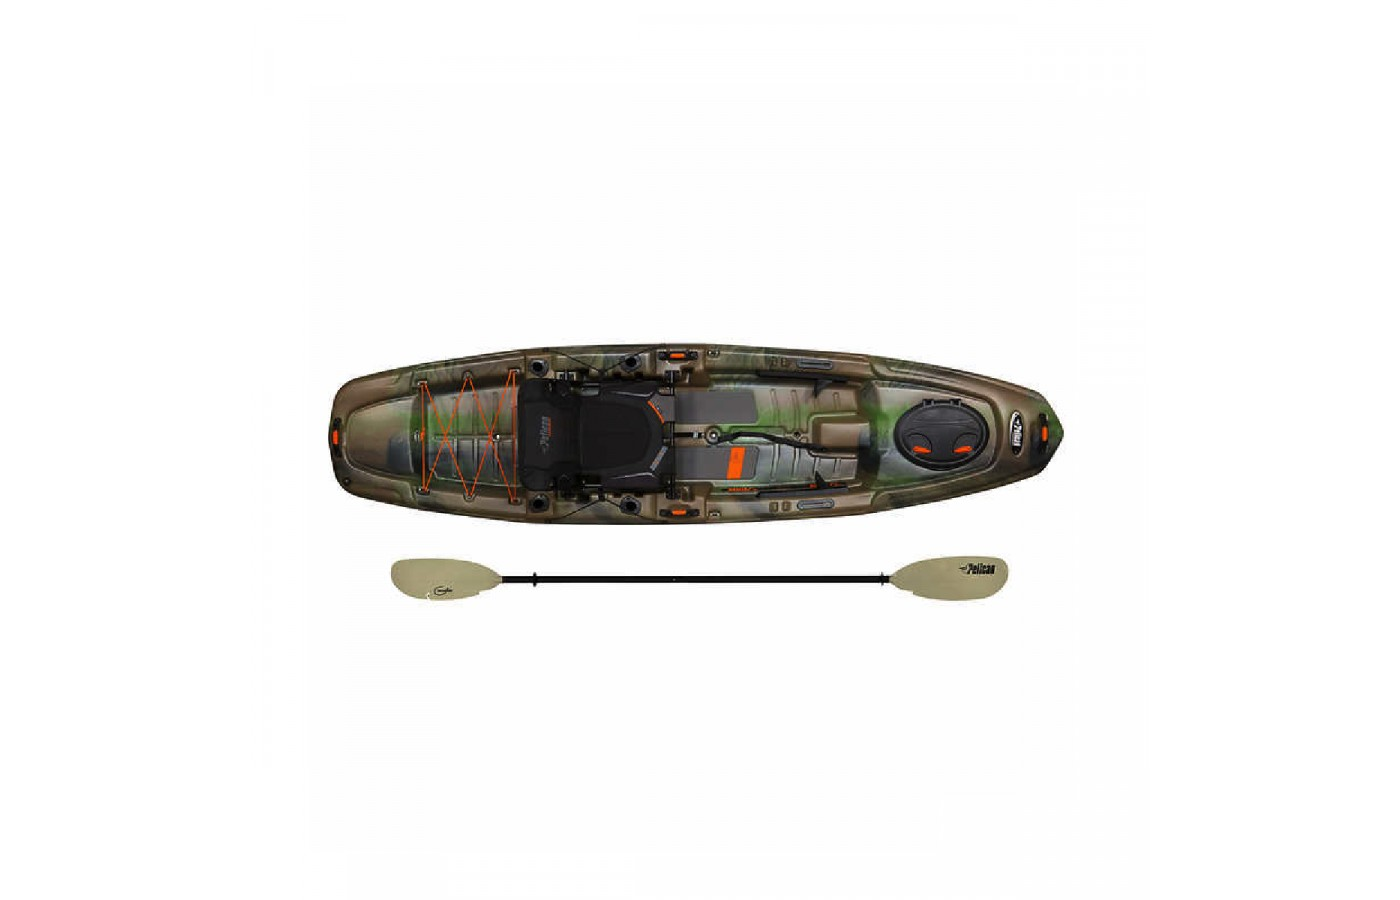 The Pelican Catch 120 offers a Poseidon paddle for easier gliding through the water.